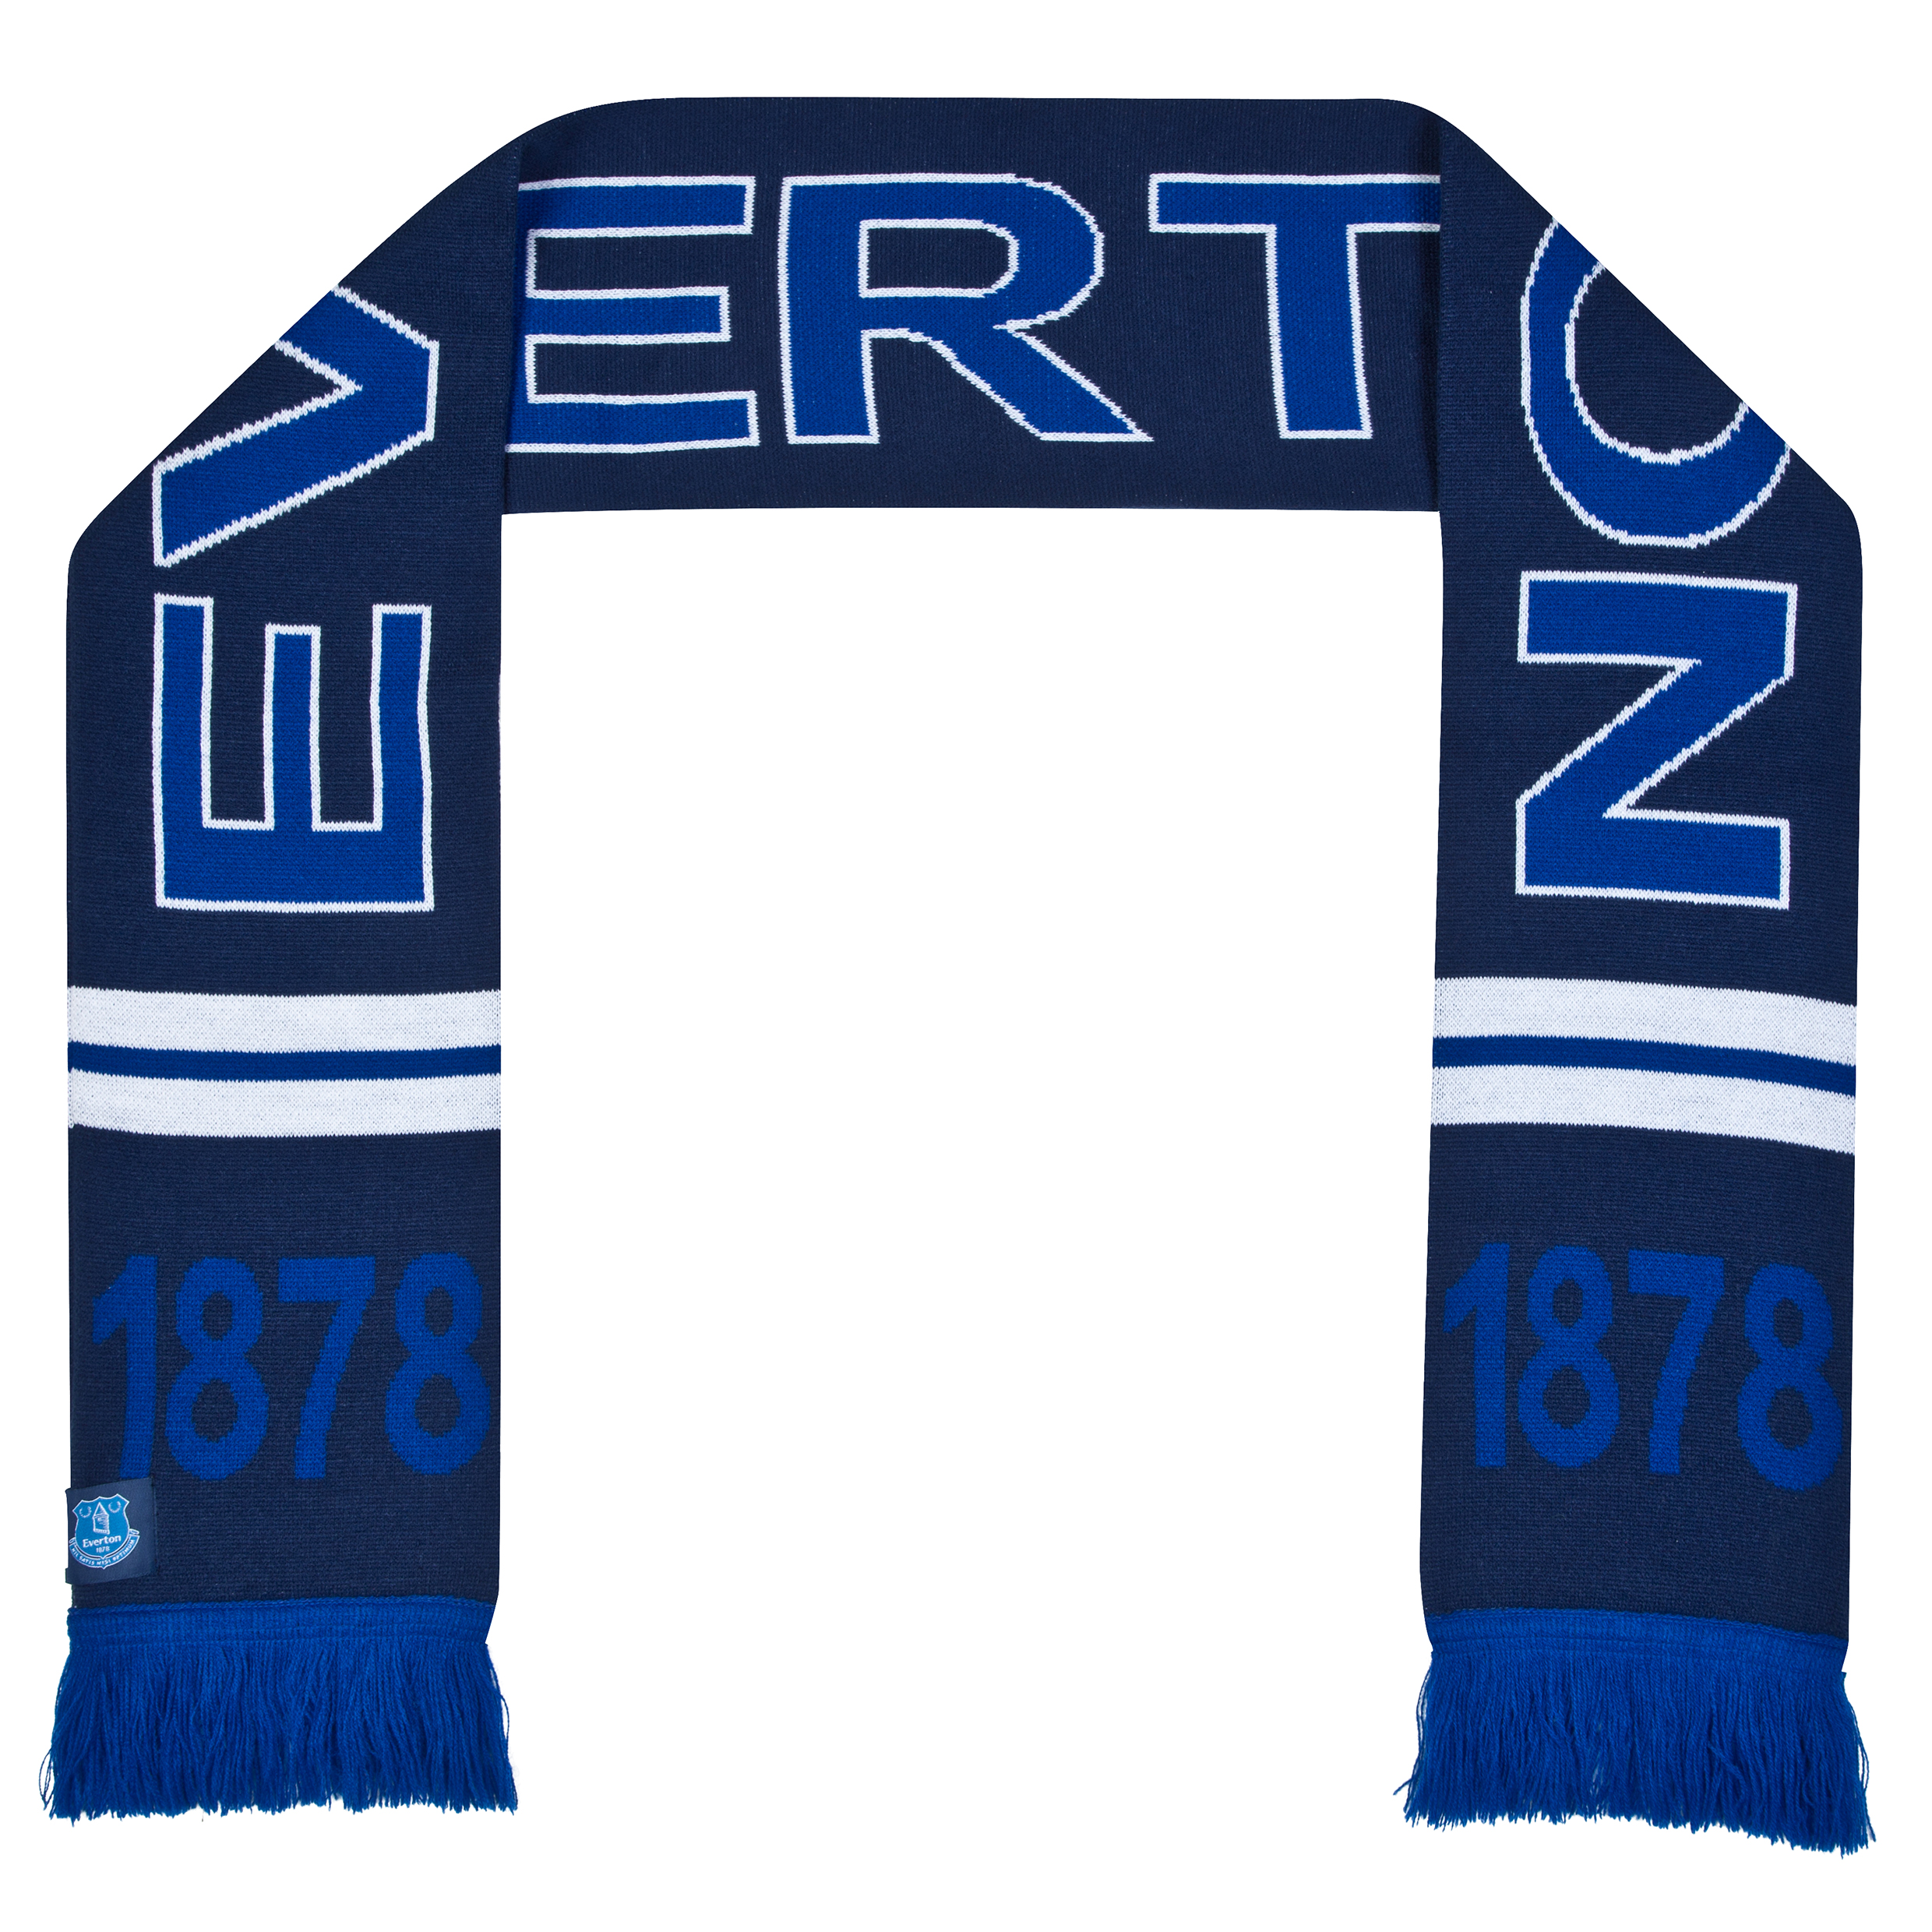 Everton Text Scarf - Royal Blue/navy - Adult